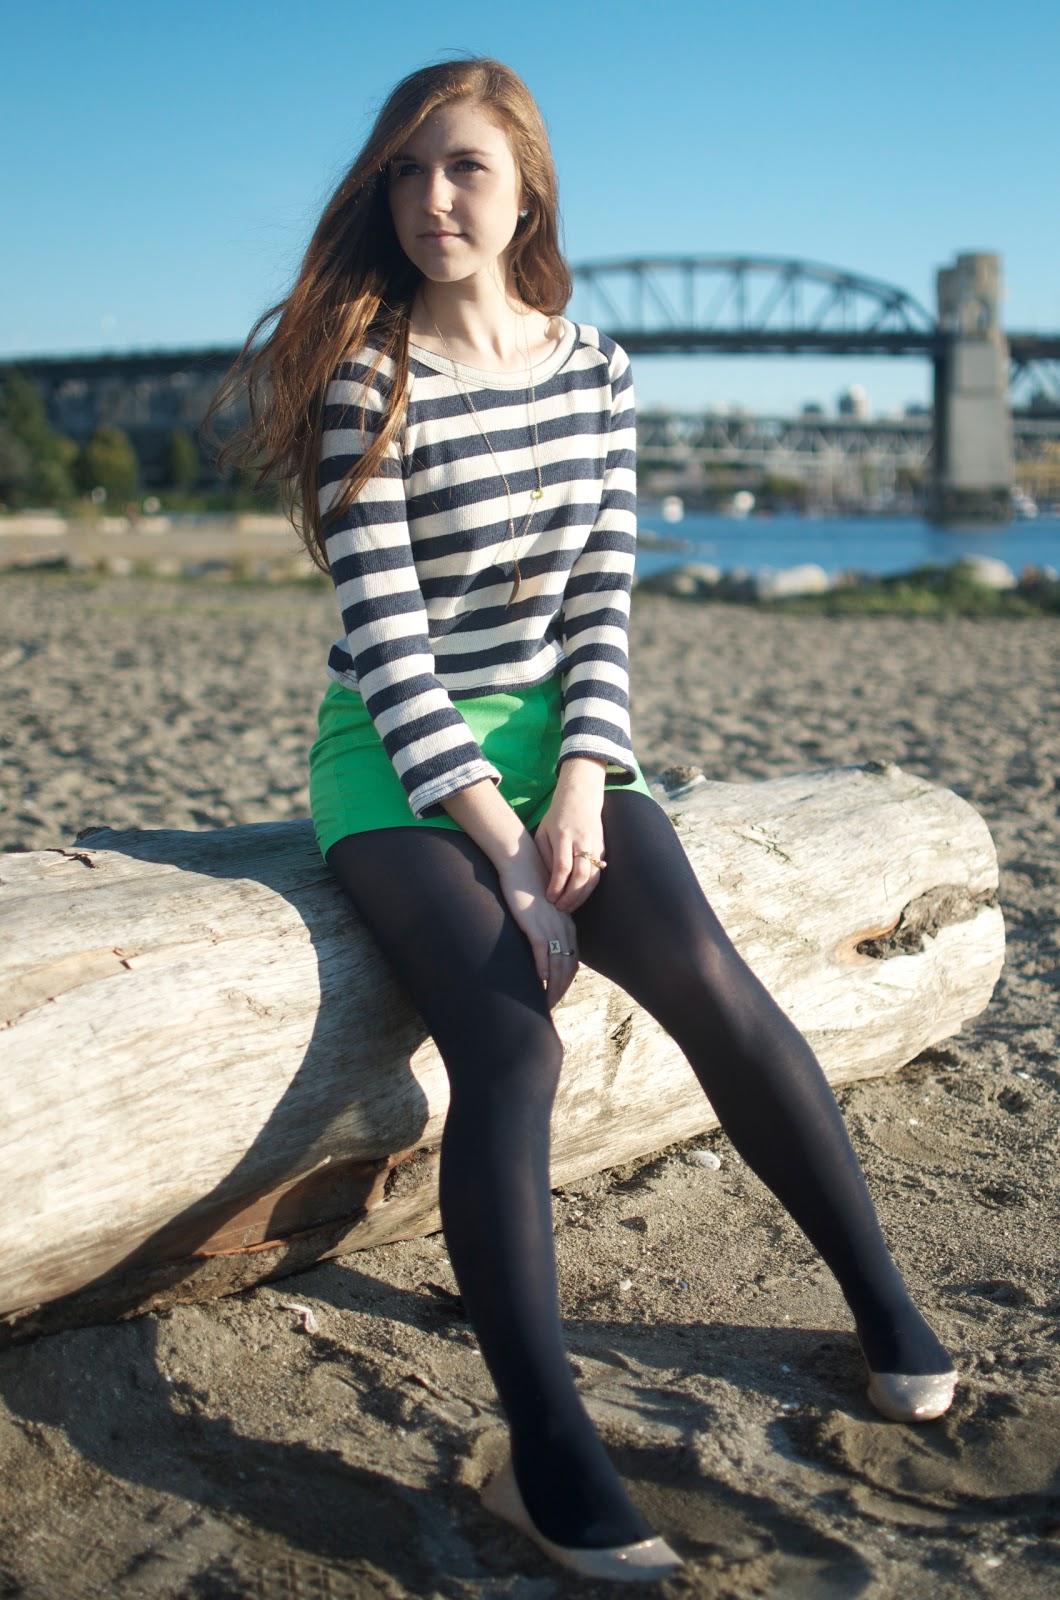 wantataste.blogspot.co.uk - Fashionmylegs : The tights and